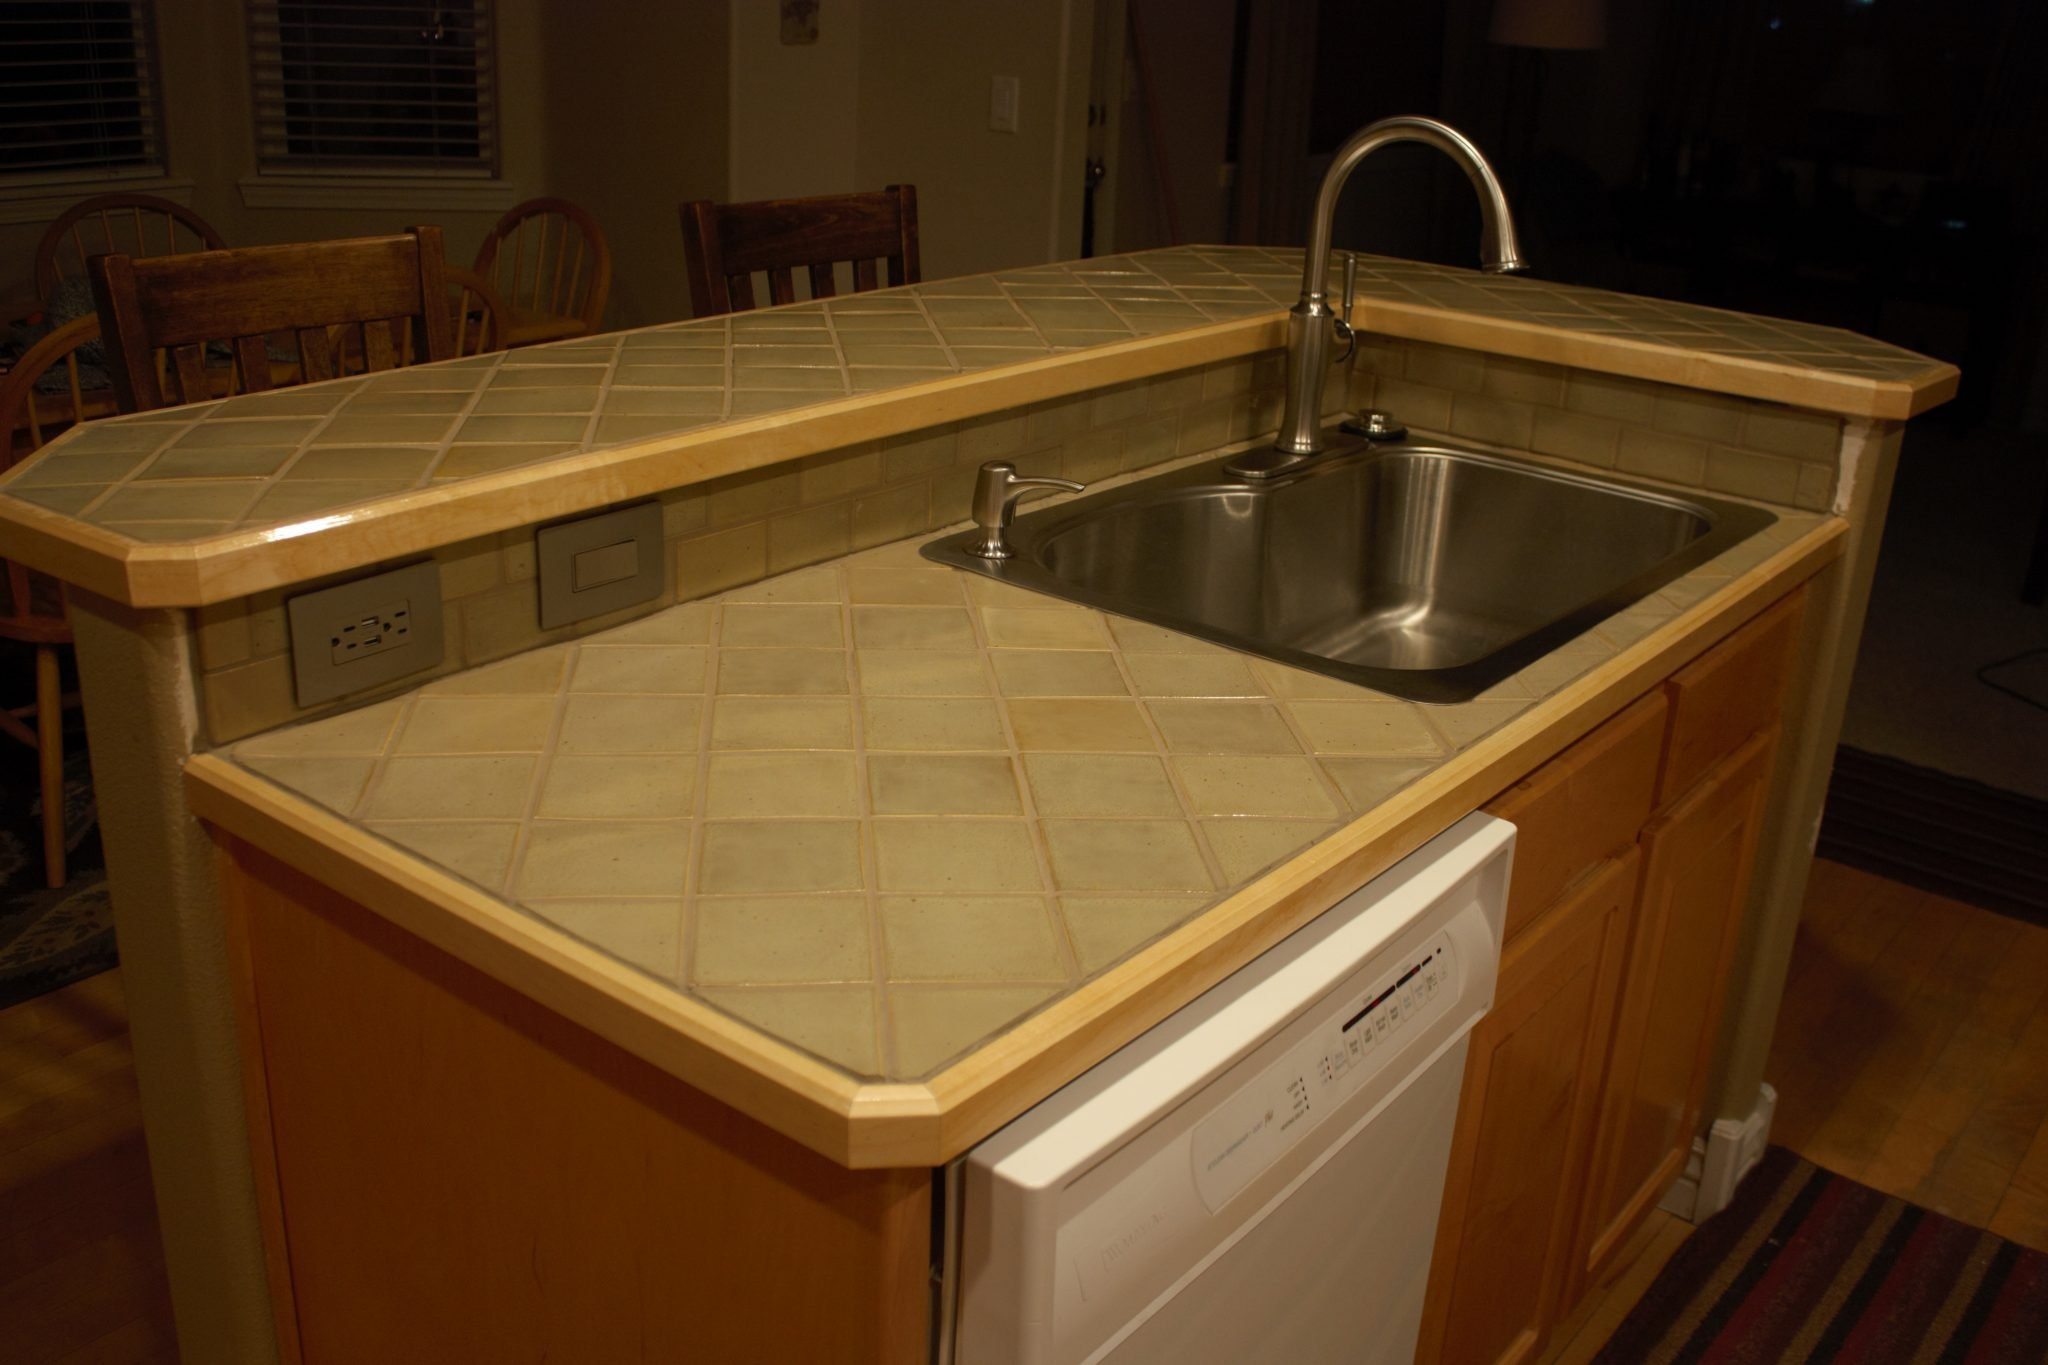 Ceramic Tile Countertops Add Beauty And Personality To A